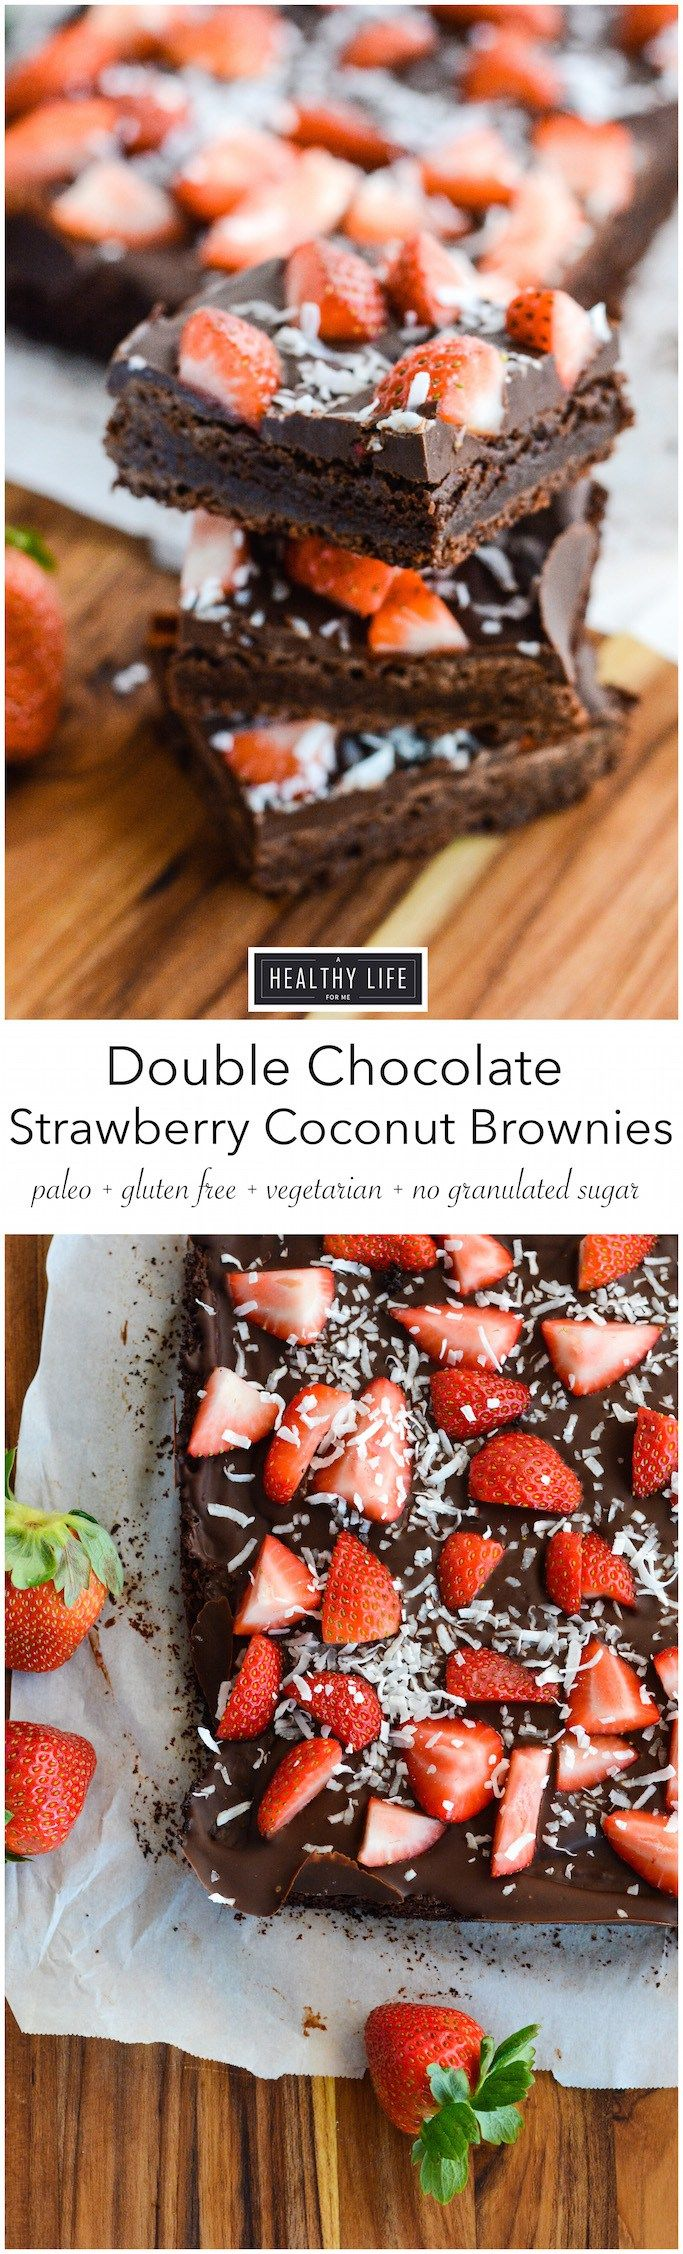 Double Chocolate Strawberry Coconut Brownies are a dense and incredible tasting brownie, with a double layer of chocolate topped with sweet fresh organic strawberries and unsweetened shredded coconut.